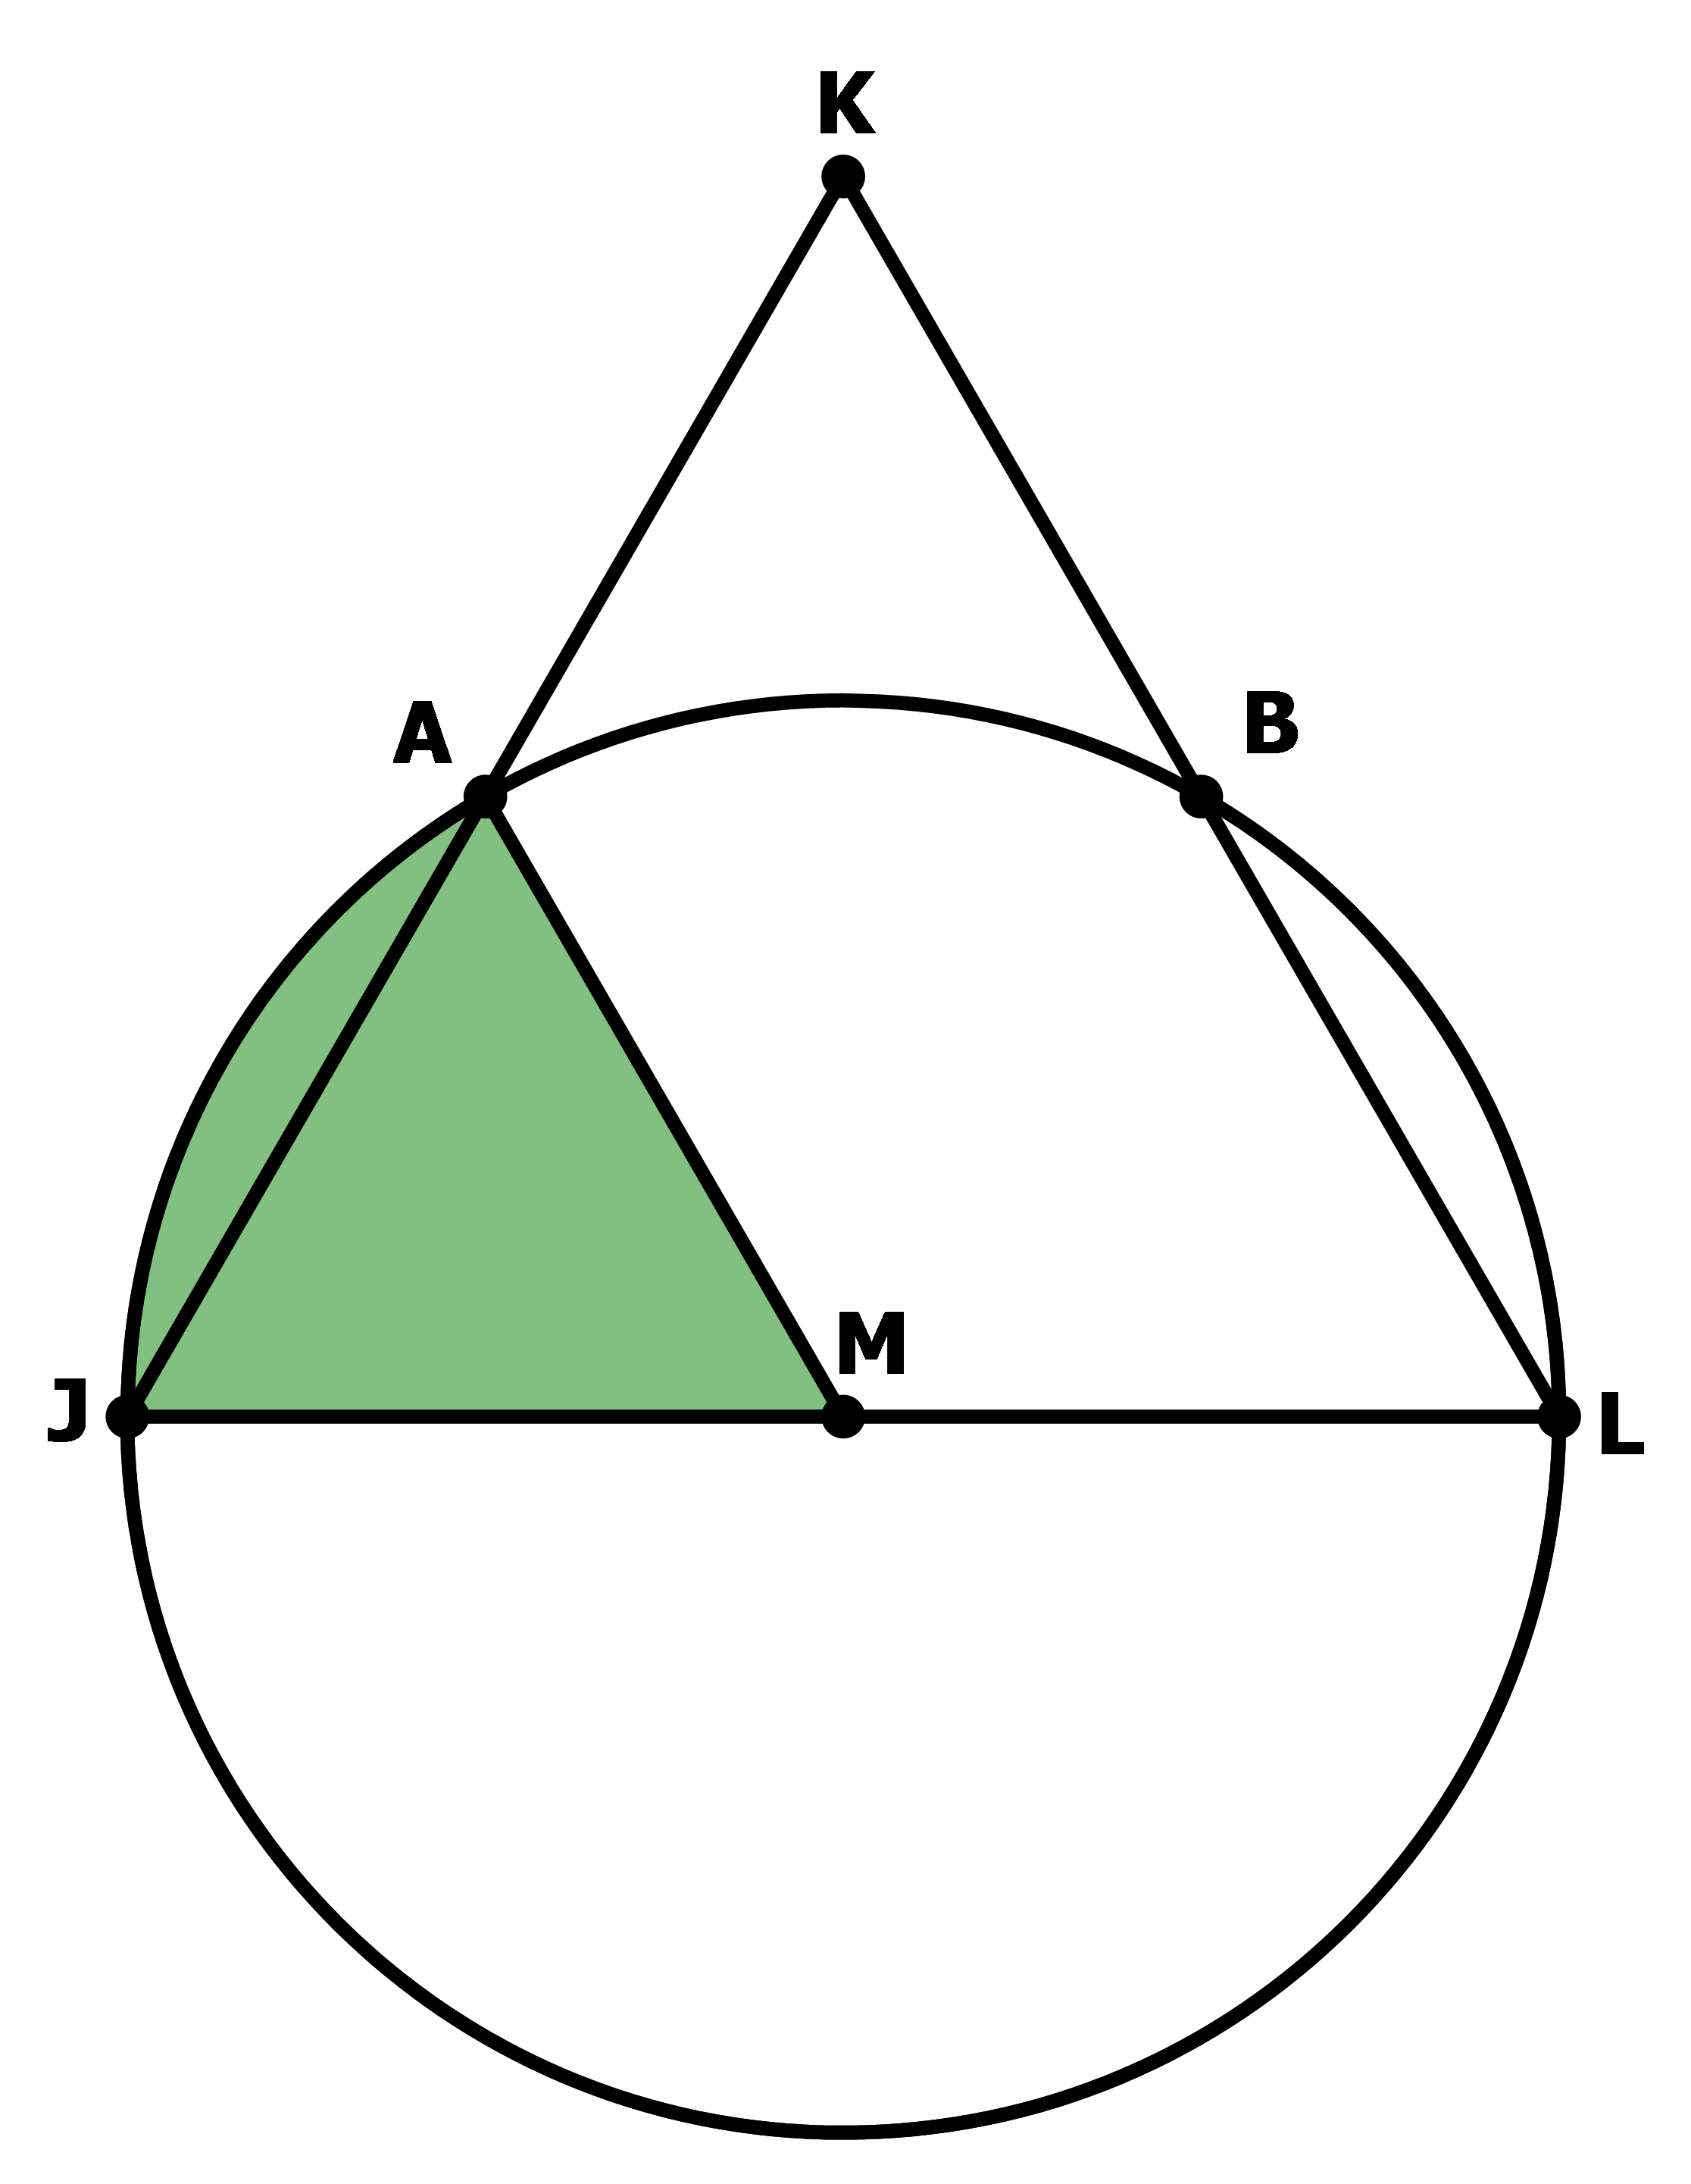 And Point B, The Midpoint Of Kl Triangle Jam Must Be An Equilateral  Triangle, With Sides Equal To 1 First, We Willpute The Area Of The  Sector: